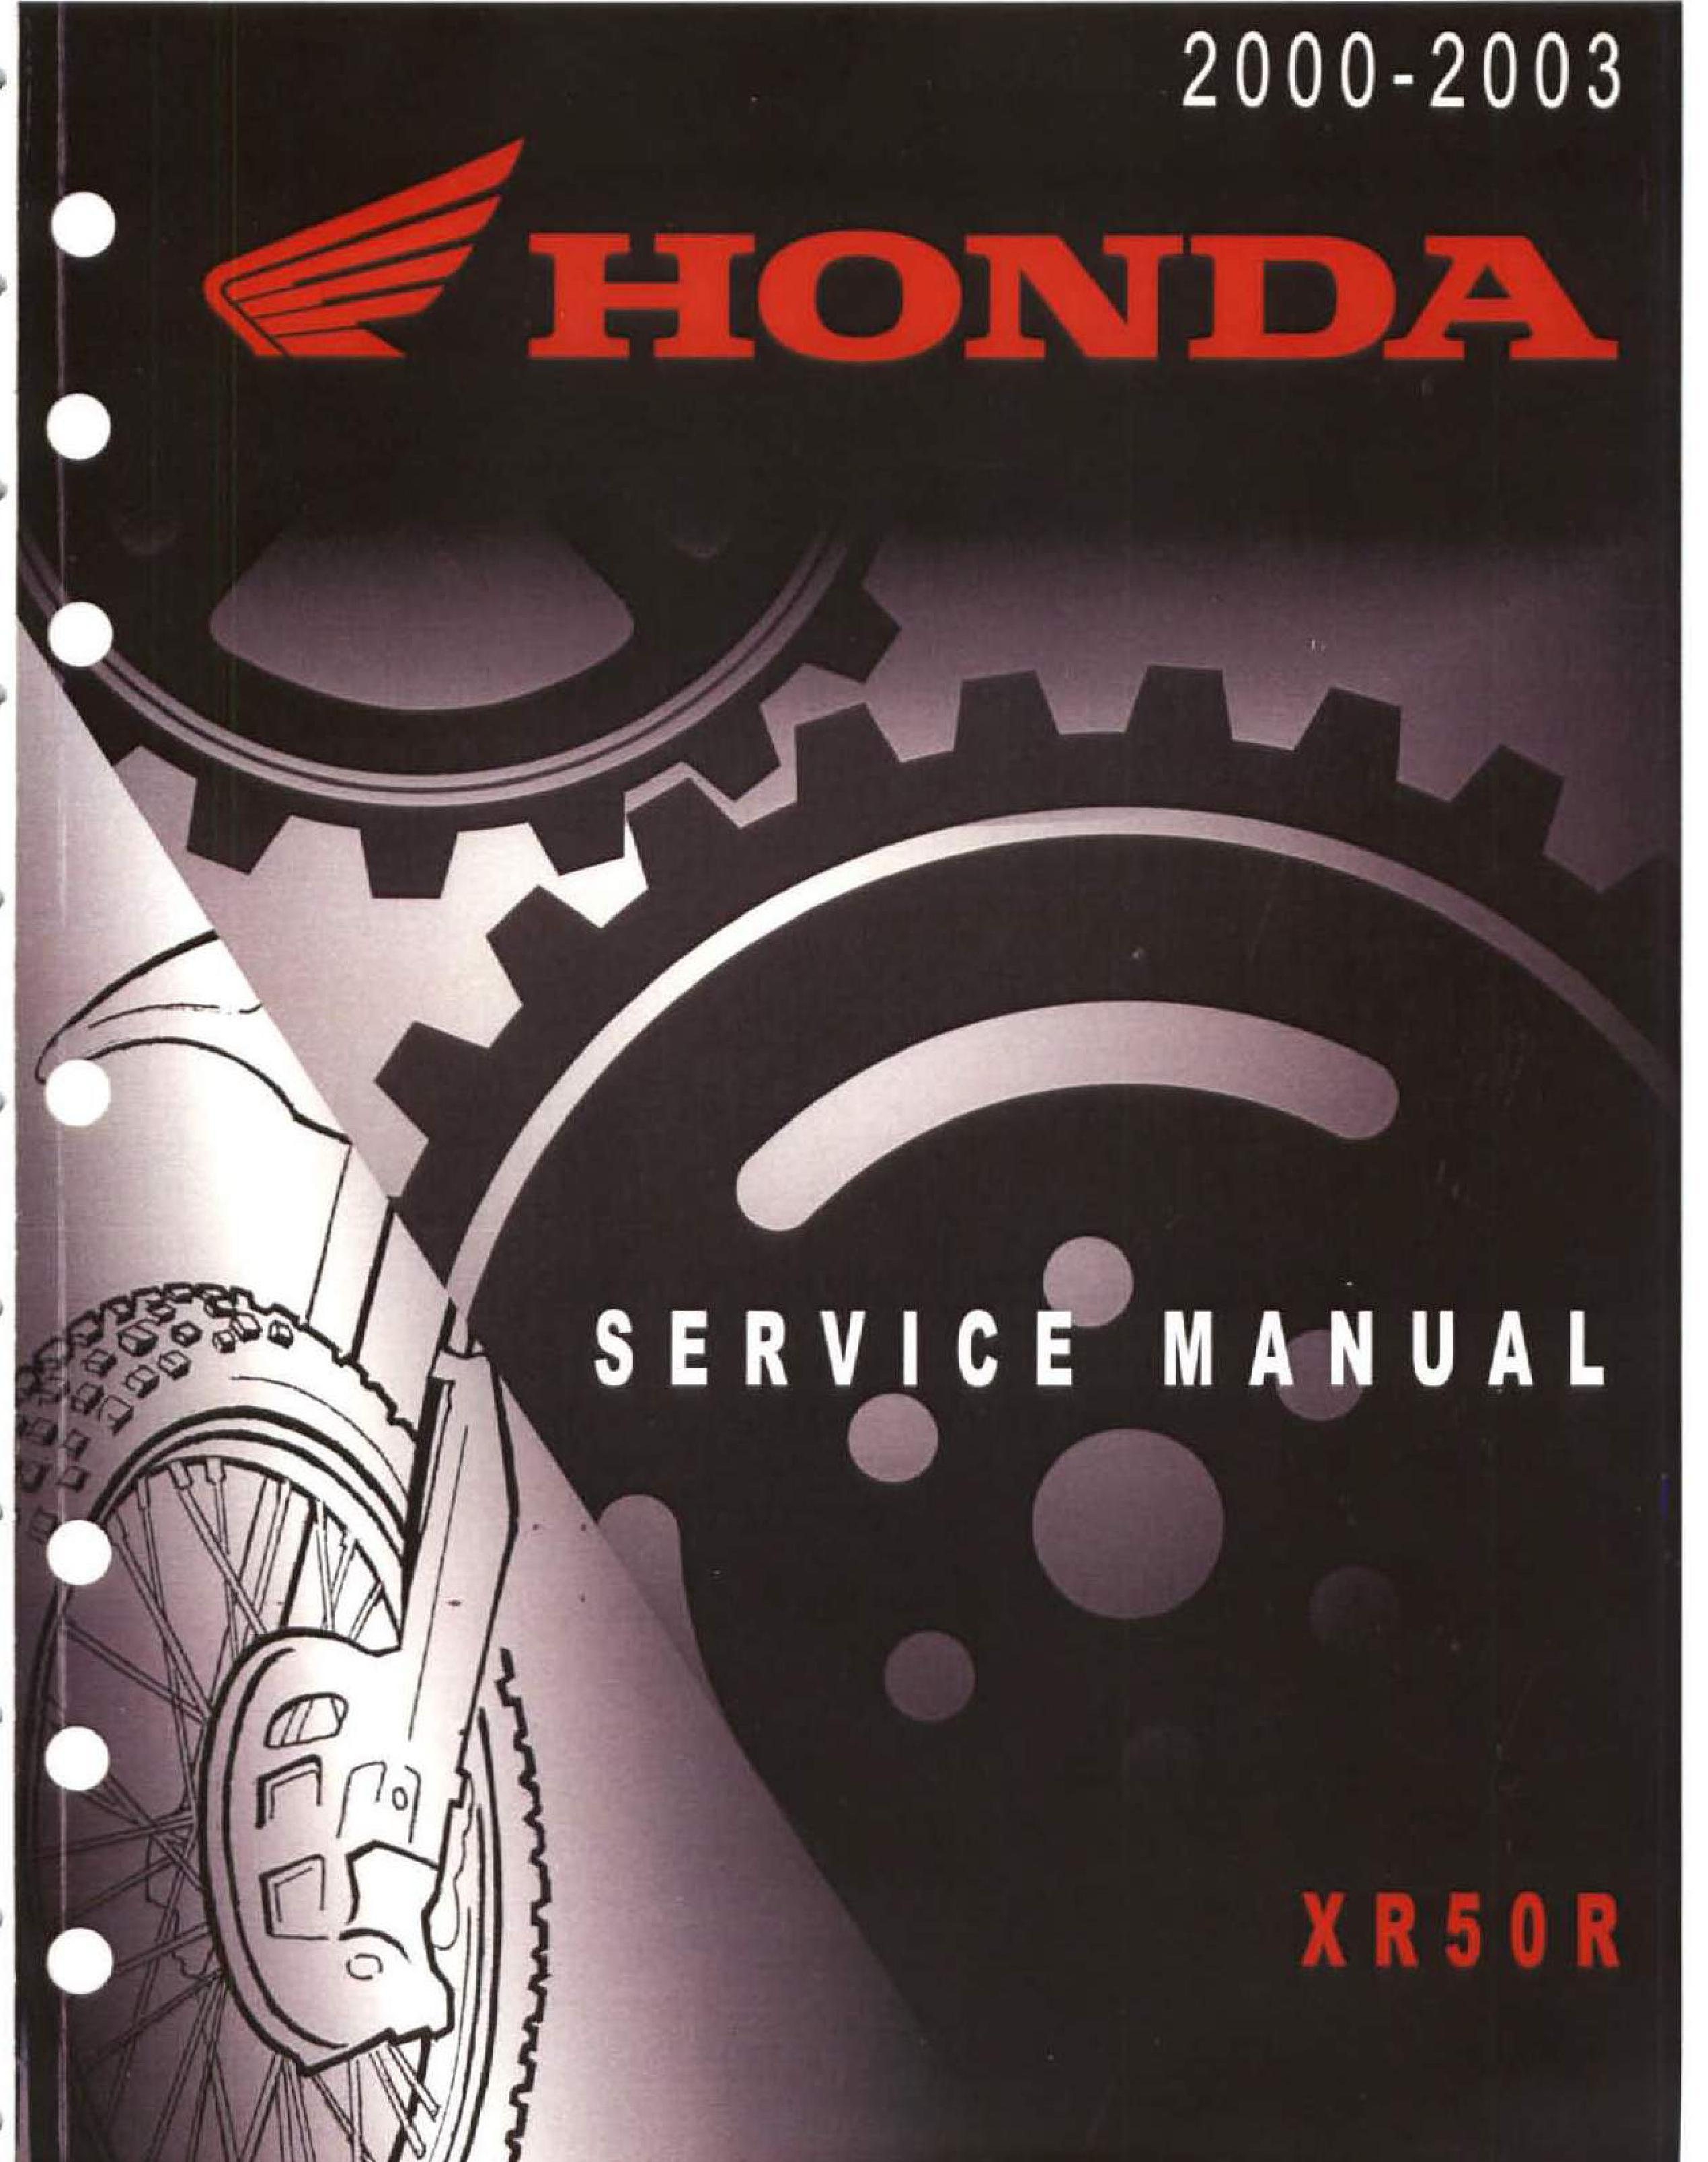 Workshop manual for Honda XR50R (2000-2003)